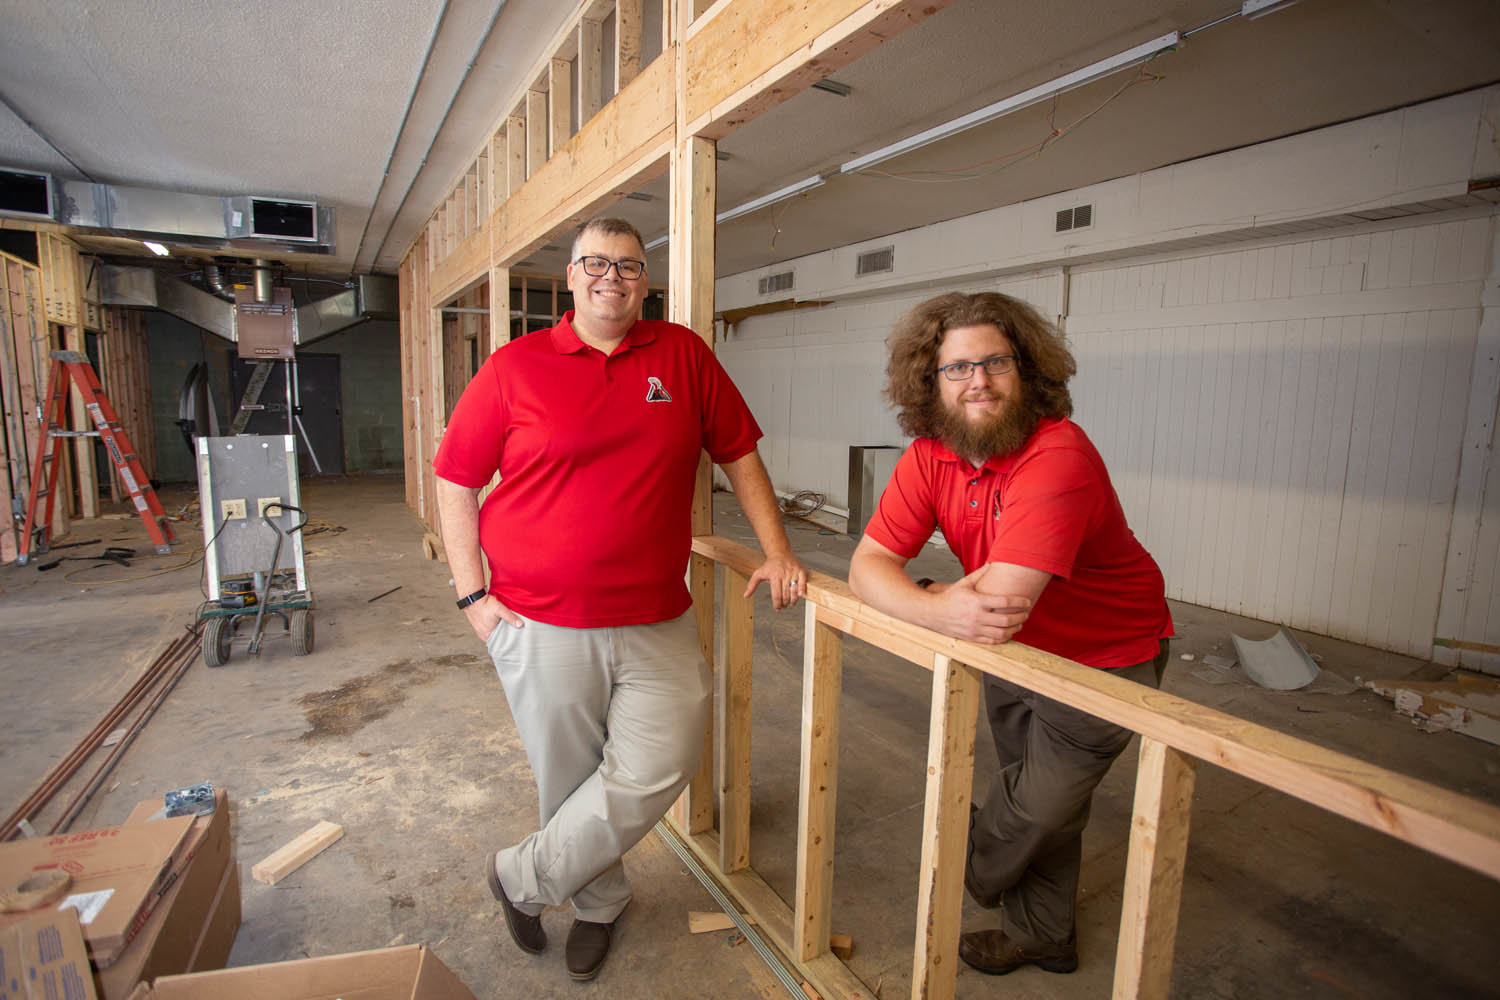 PREPARATIONS: Prehistoric Brewing Co. co-owners Keith Davis, left, and Charley Norton anticipate a January opening for their brewery in the Plaza Shopping Center.